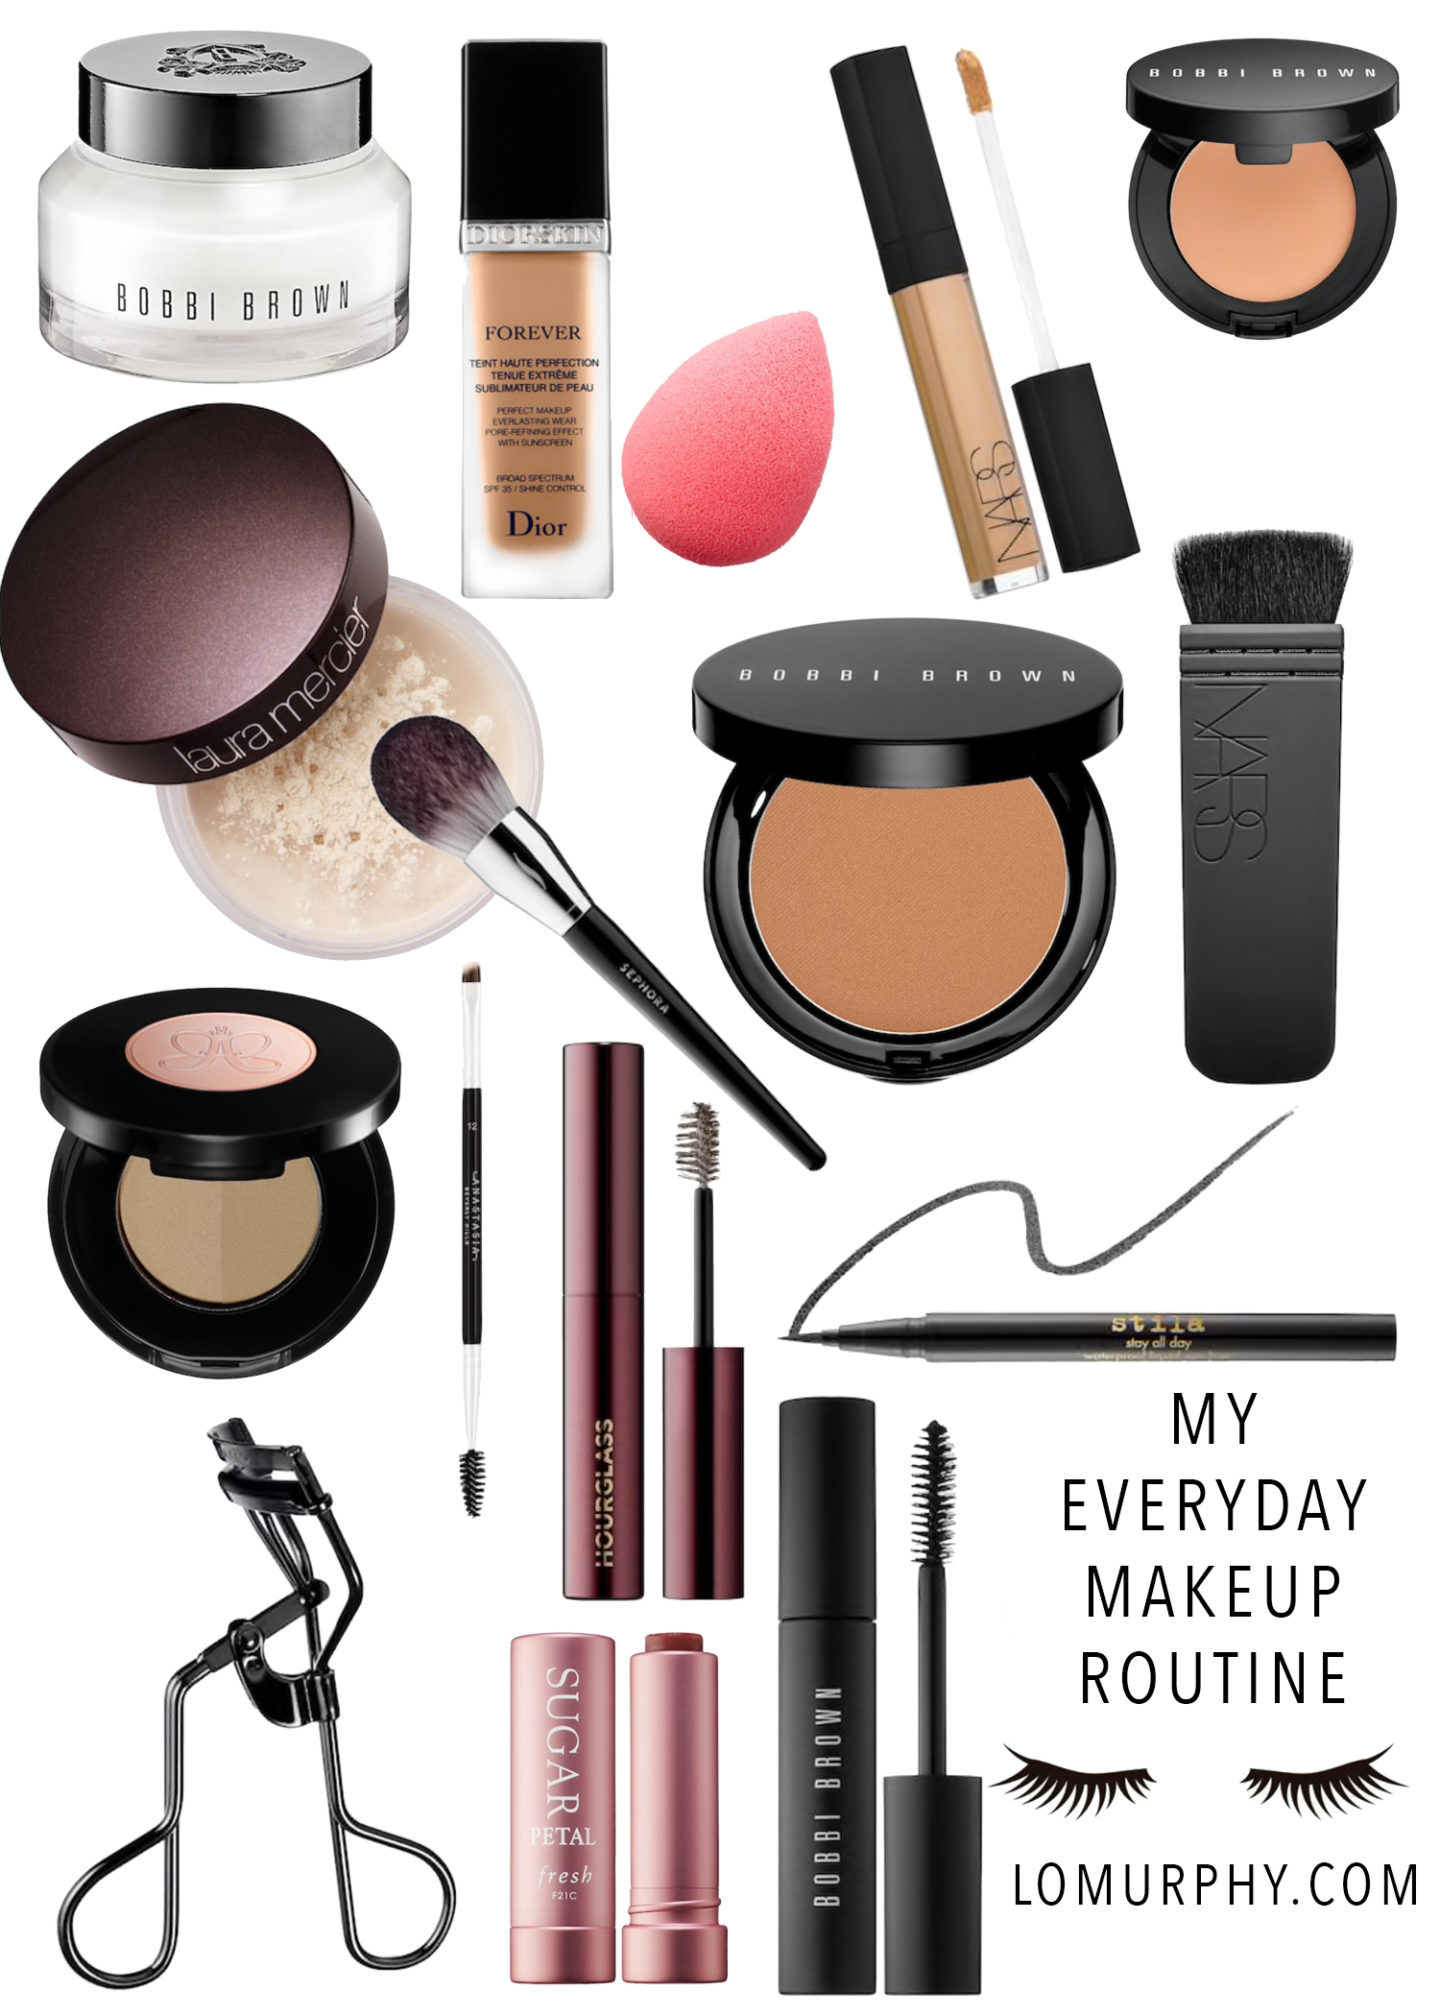 My Everyday Make Up Products